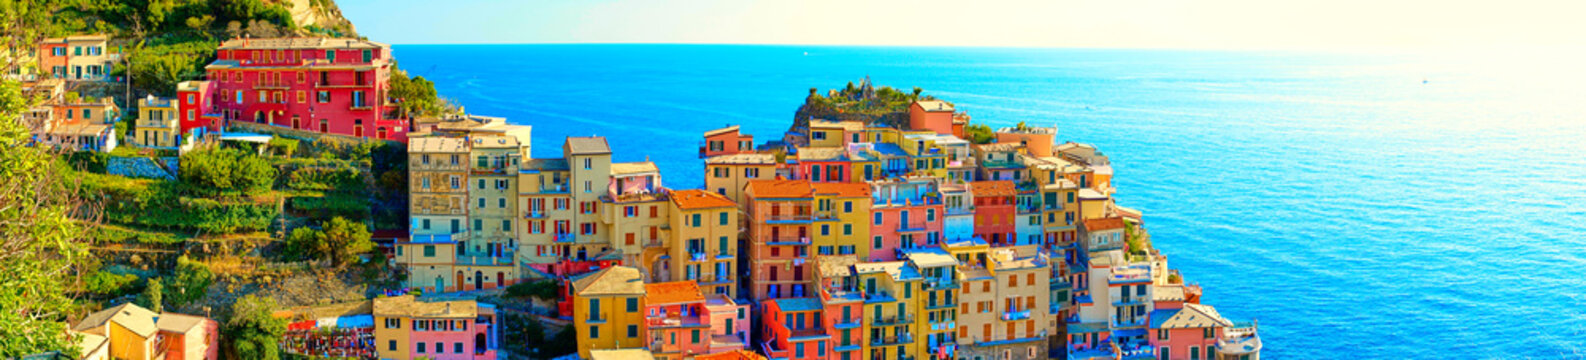 "Colorful houses of Manarola, a beautiful village in ""Cinque Terre National Park"". Stunning scenery at coast of Italy. Fishermen village in the province of La Spezia, Liguria, Italy"